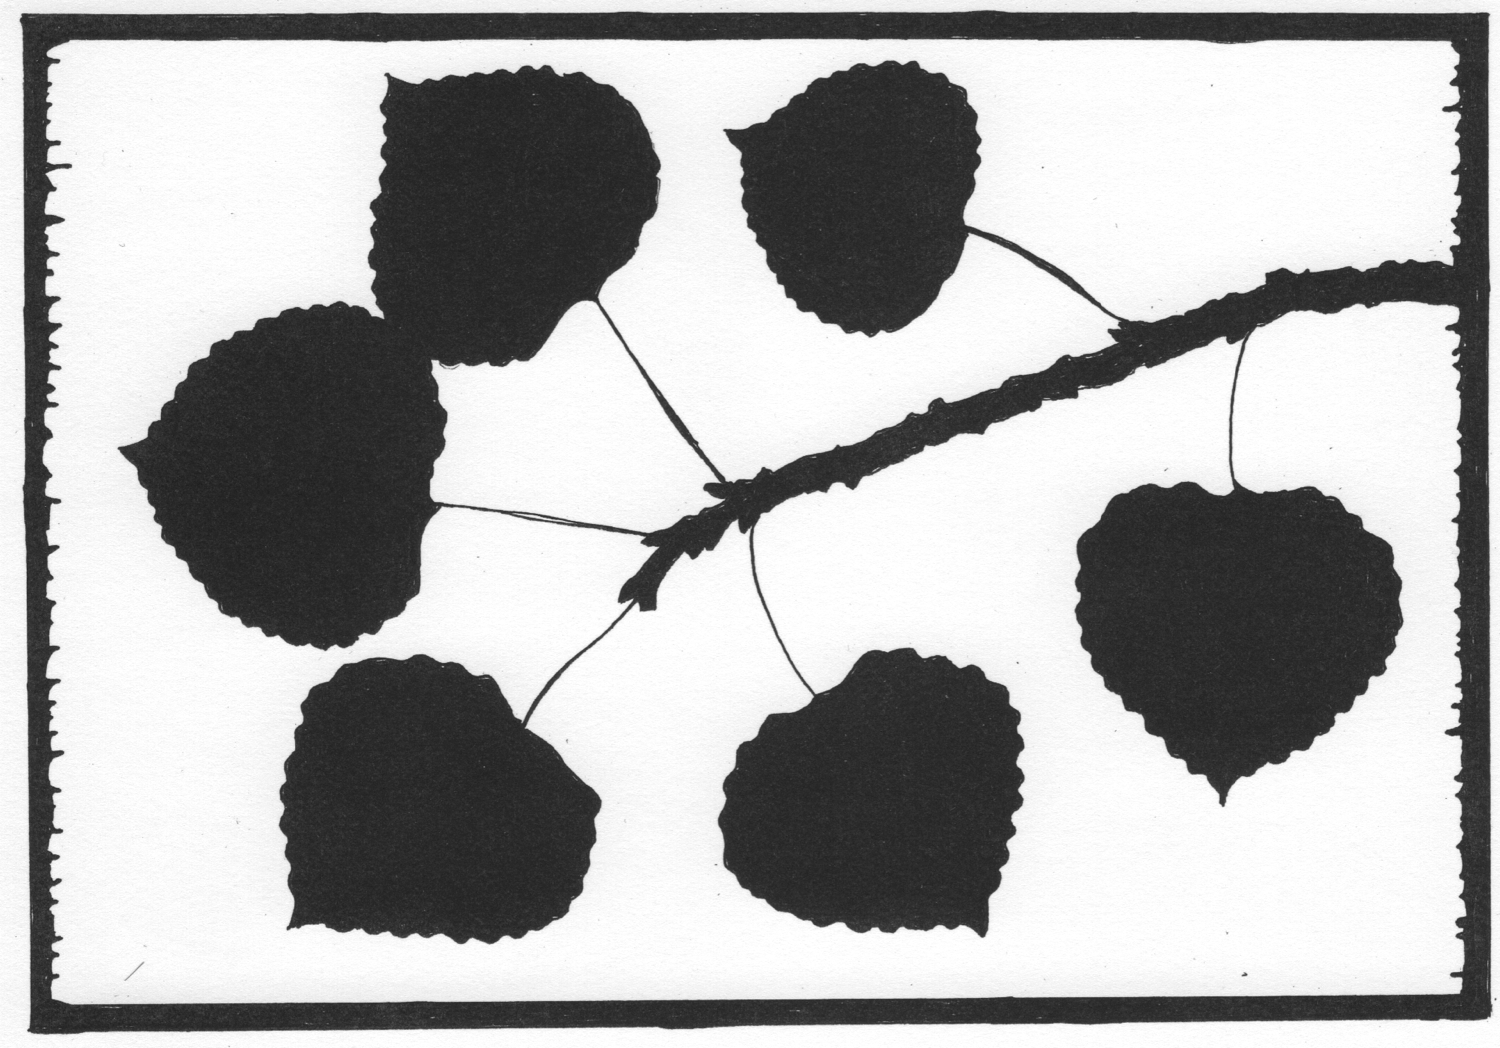 Aspen Leaves • © Fred Montague  $48 • image 8 x 5.5 • mat 14 x 11  Edition size: 88 • status: available